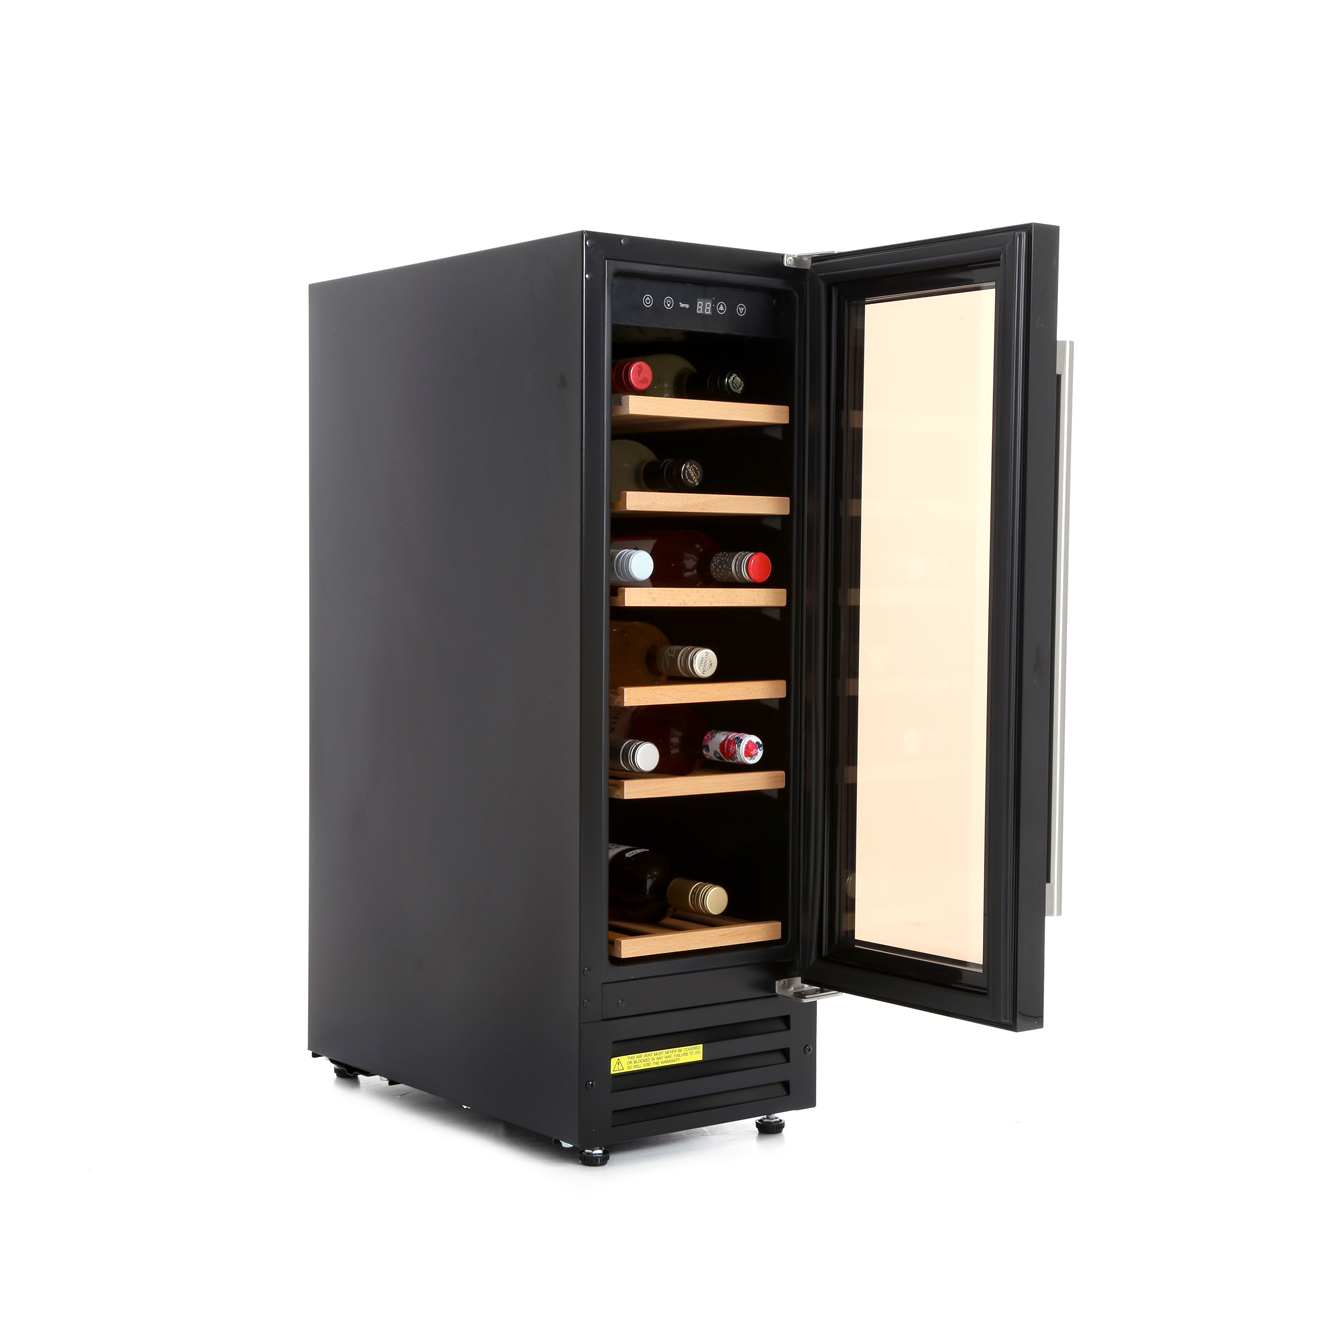 Buy new world 300blkwc wine cooler 444443282 black for Best wine fridge brands